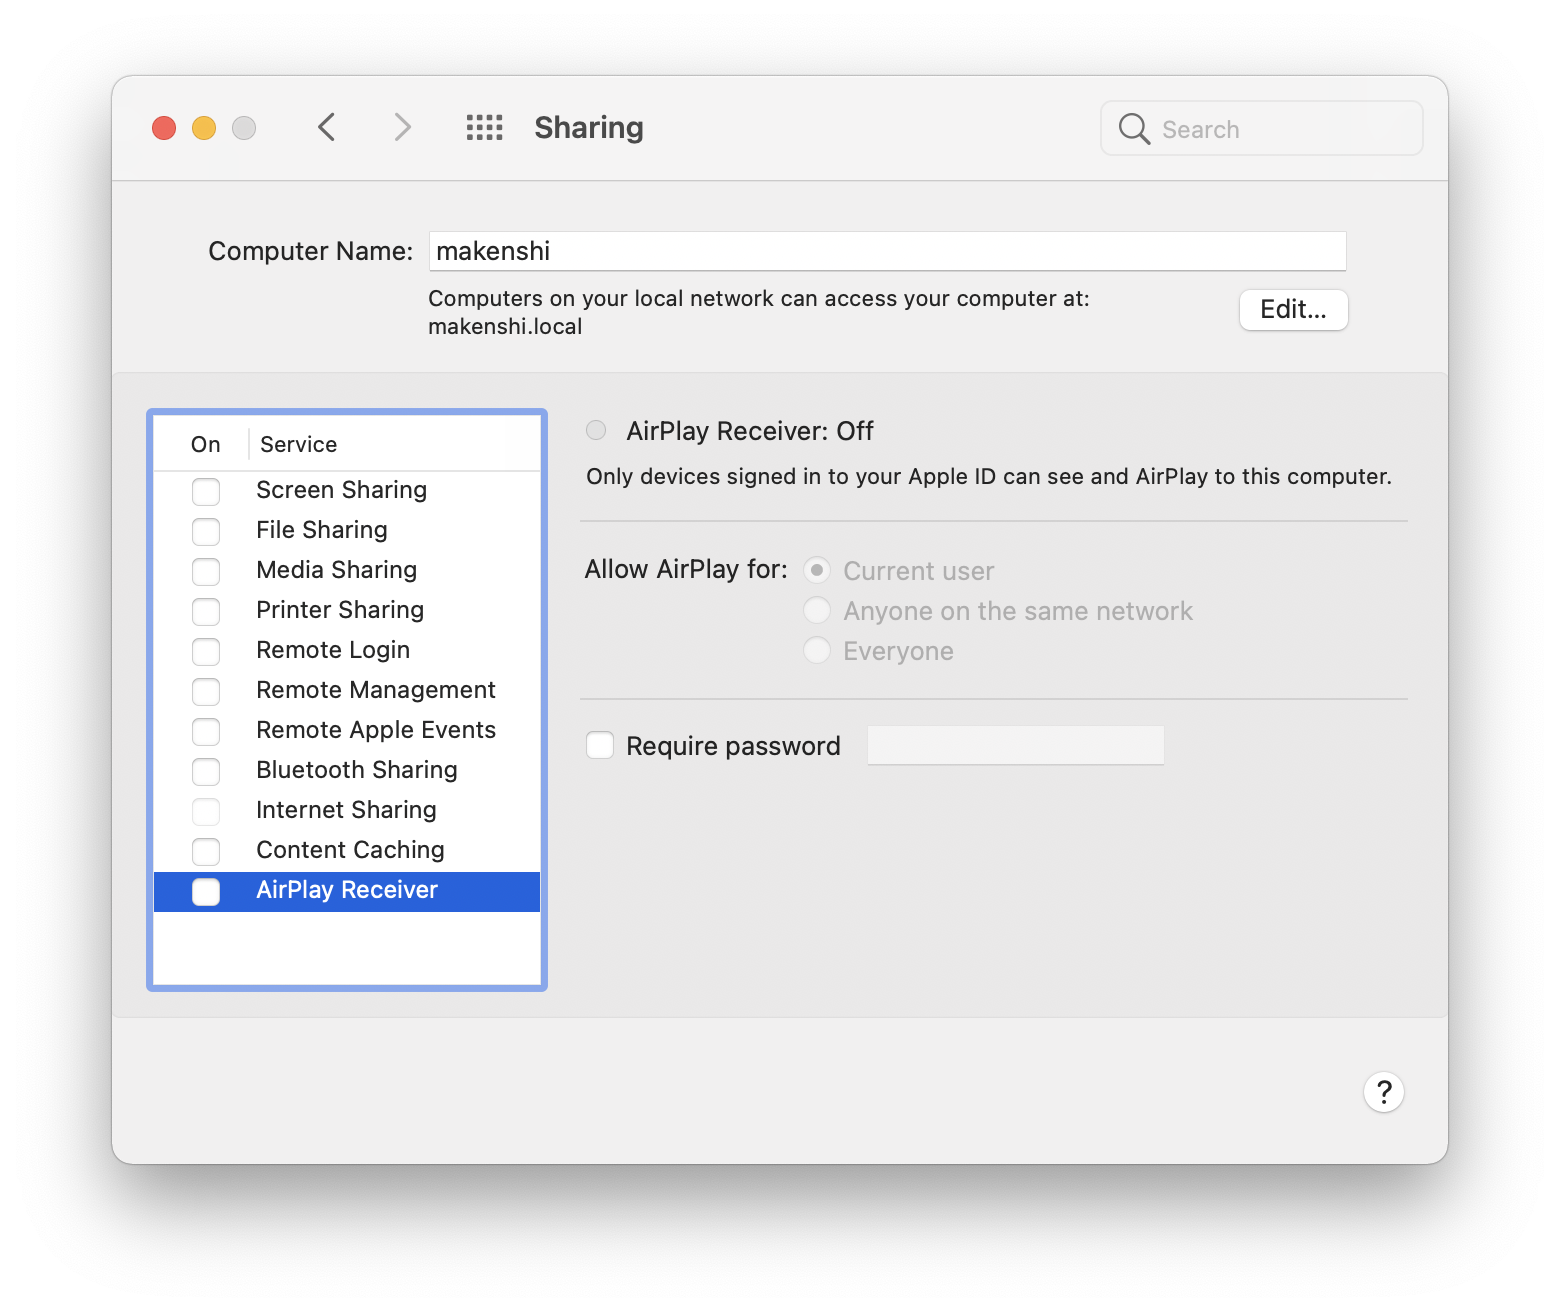 A screenshot showing the Sharing pane of macOS System Preferences. Airplay Receiver has been unticked.